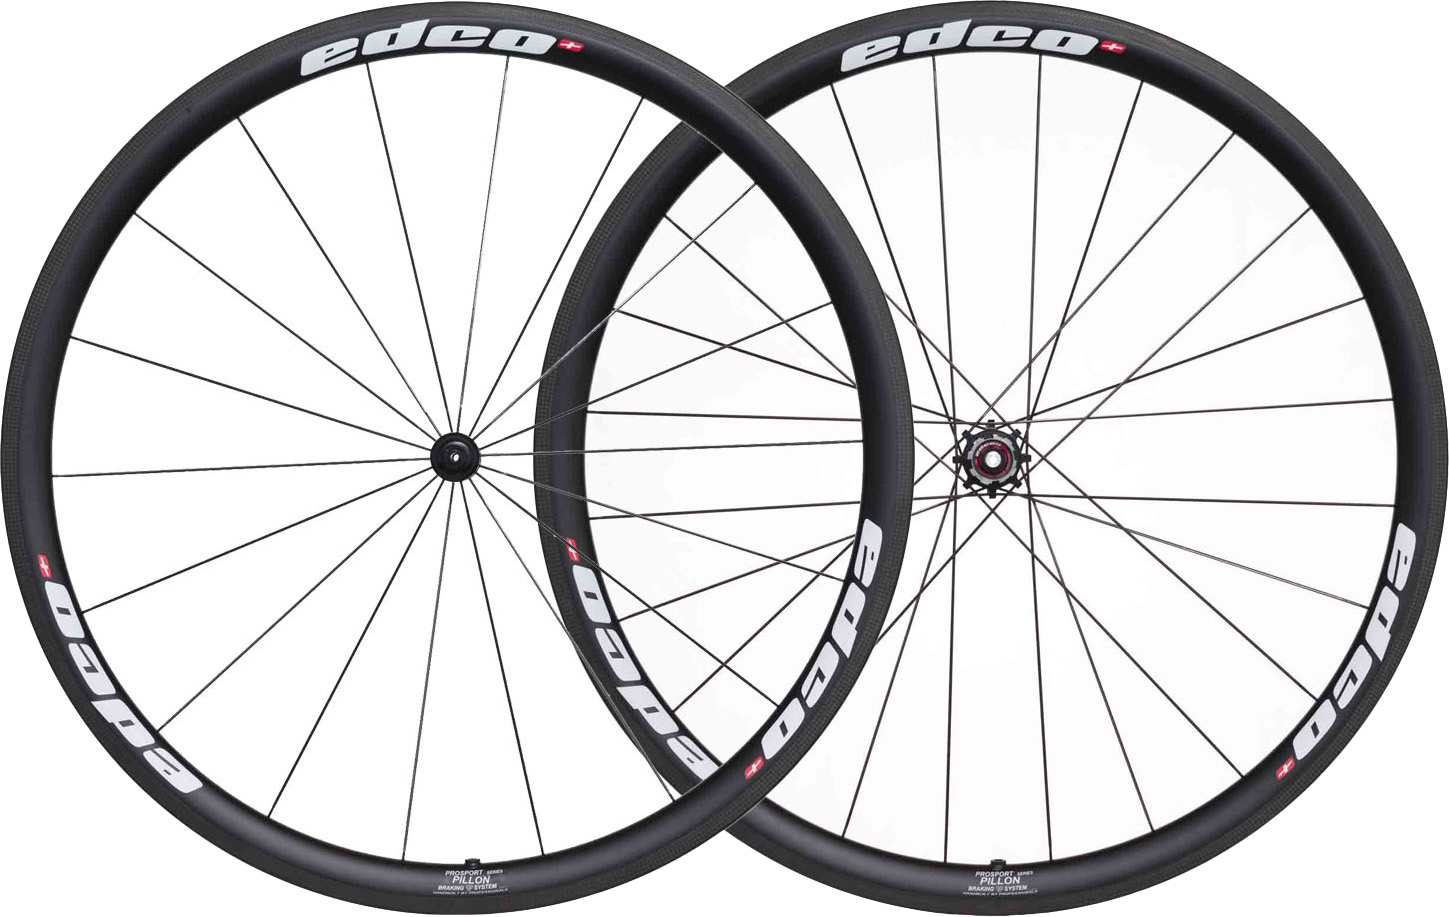 Edco Prosport Pillon Wheelset | Wheelset